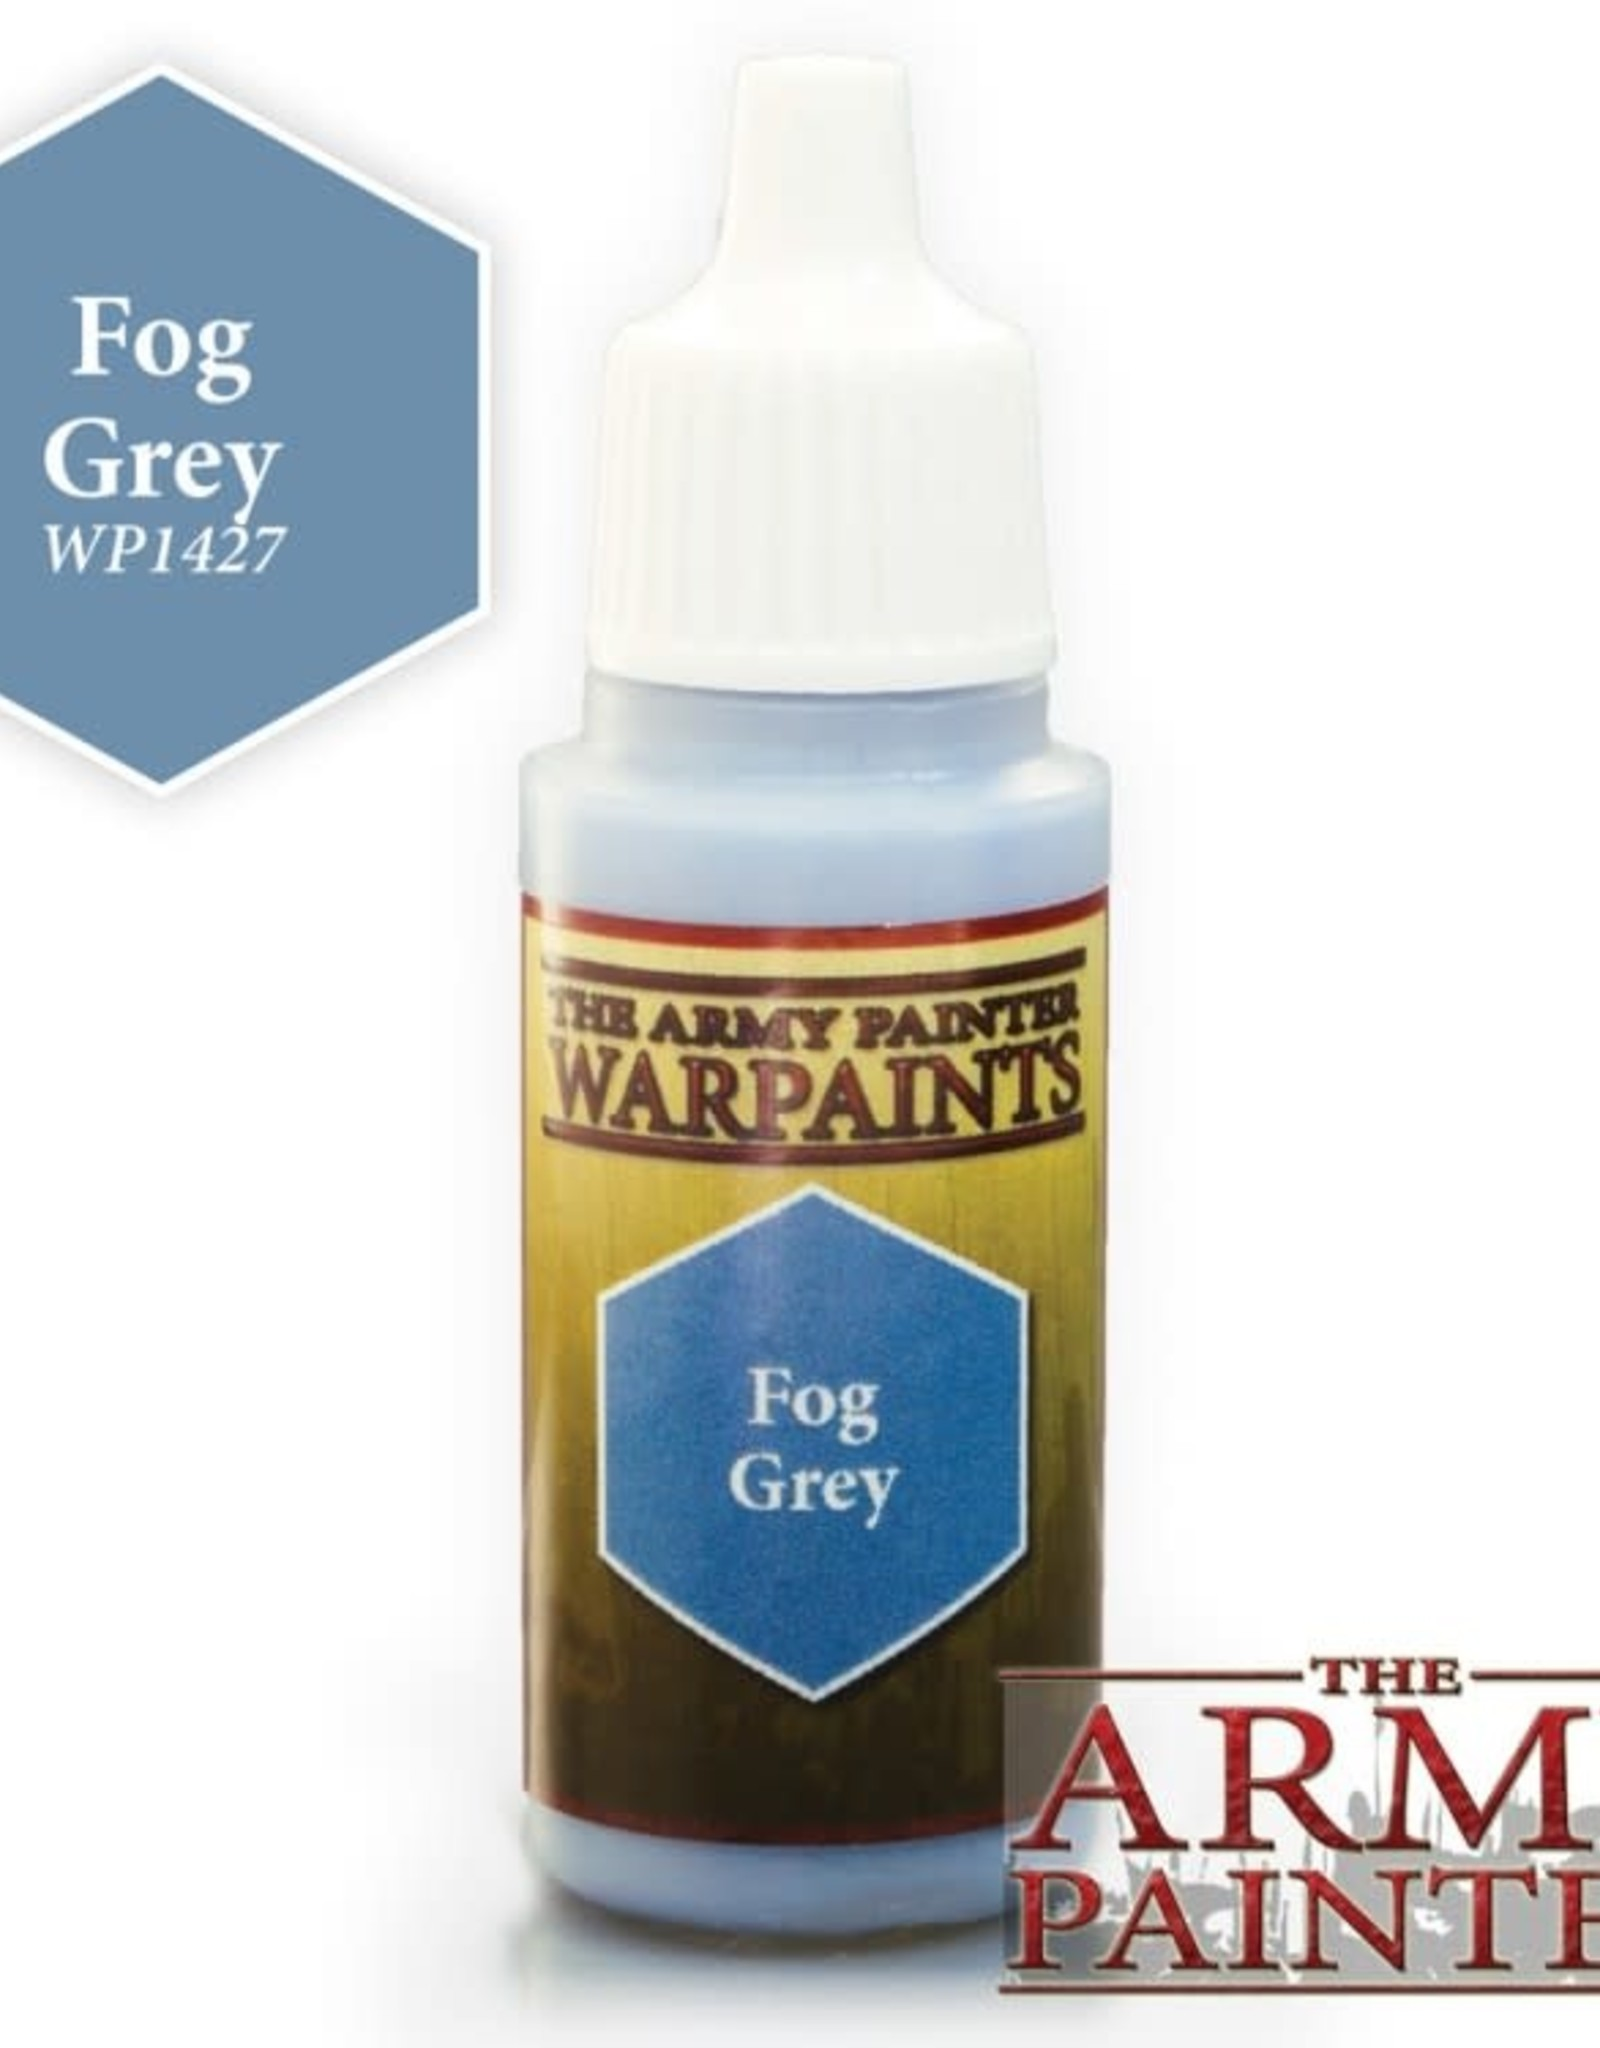 The Army Painter Warpaints - Fog Grey